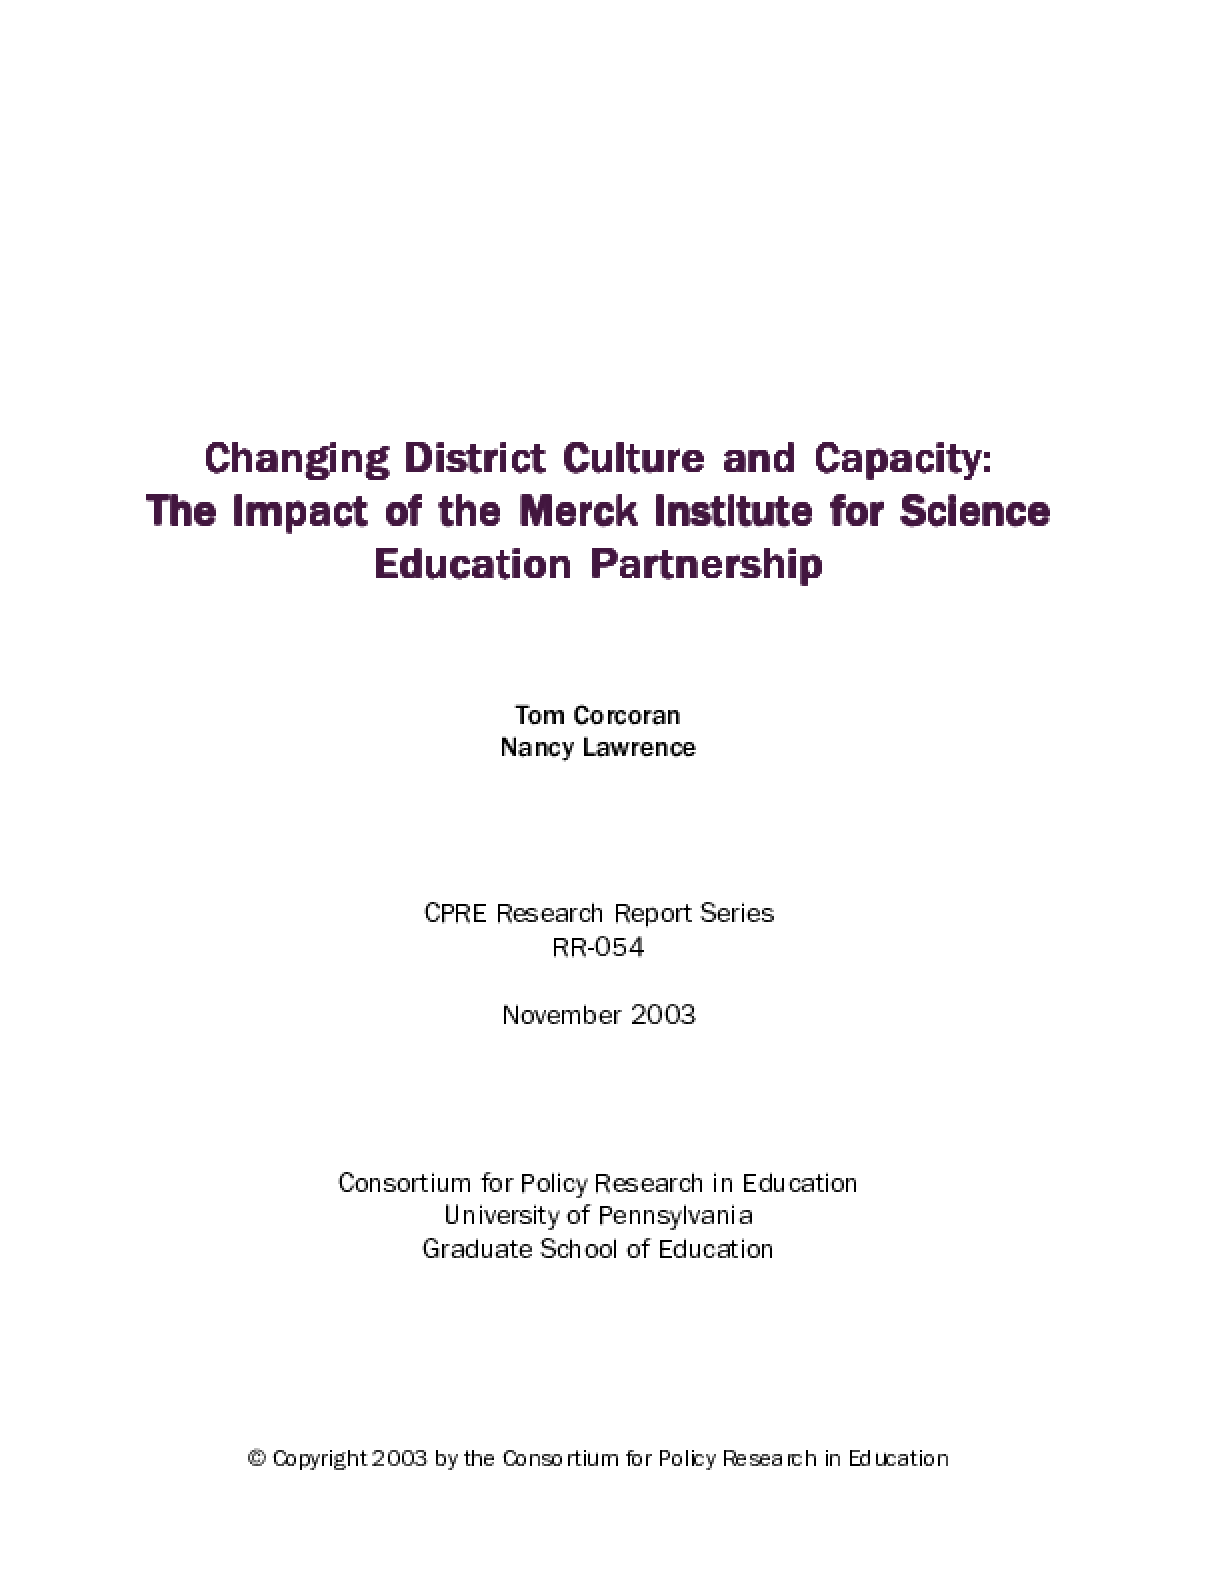 Changing District Culture and Capacity: The Impact of the Merck Institute for Science Education Partnership